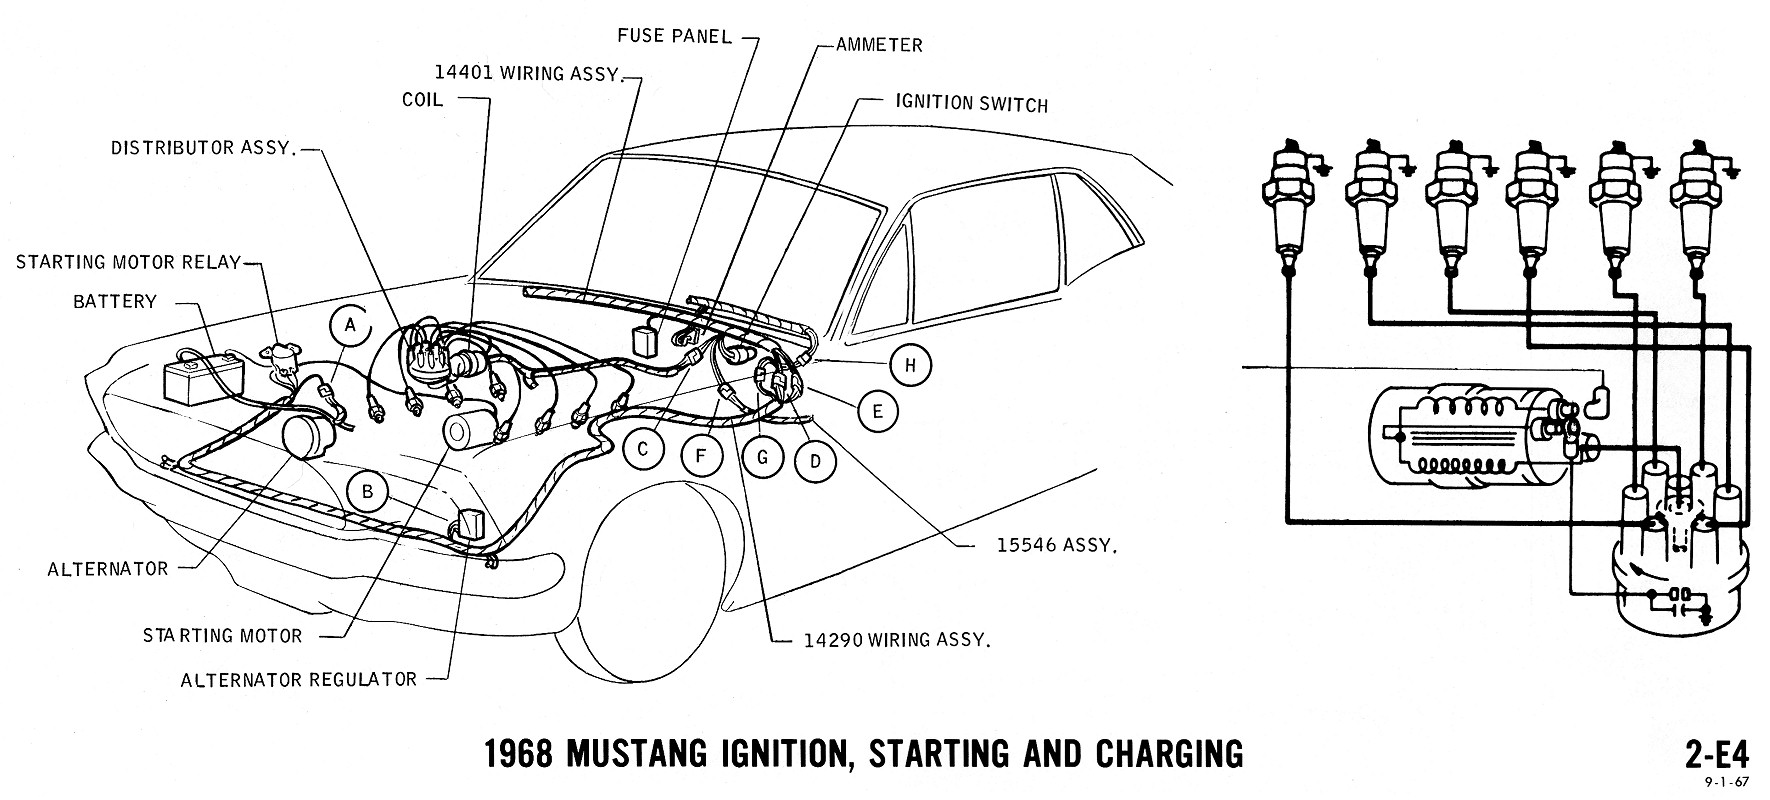 Ski Doo Mach 1 Wiring Schematic Library Rotax 335 Engine Diagram 1968 Mustang Ignition Starting Charging 2